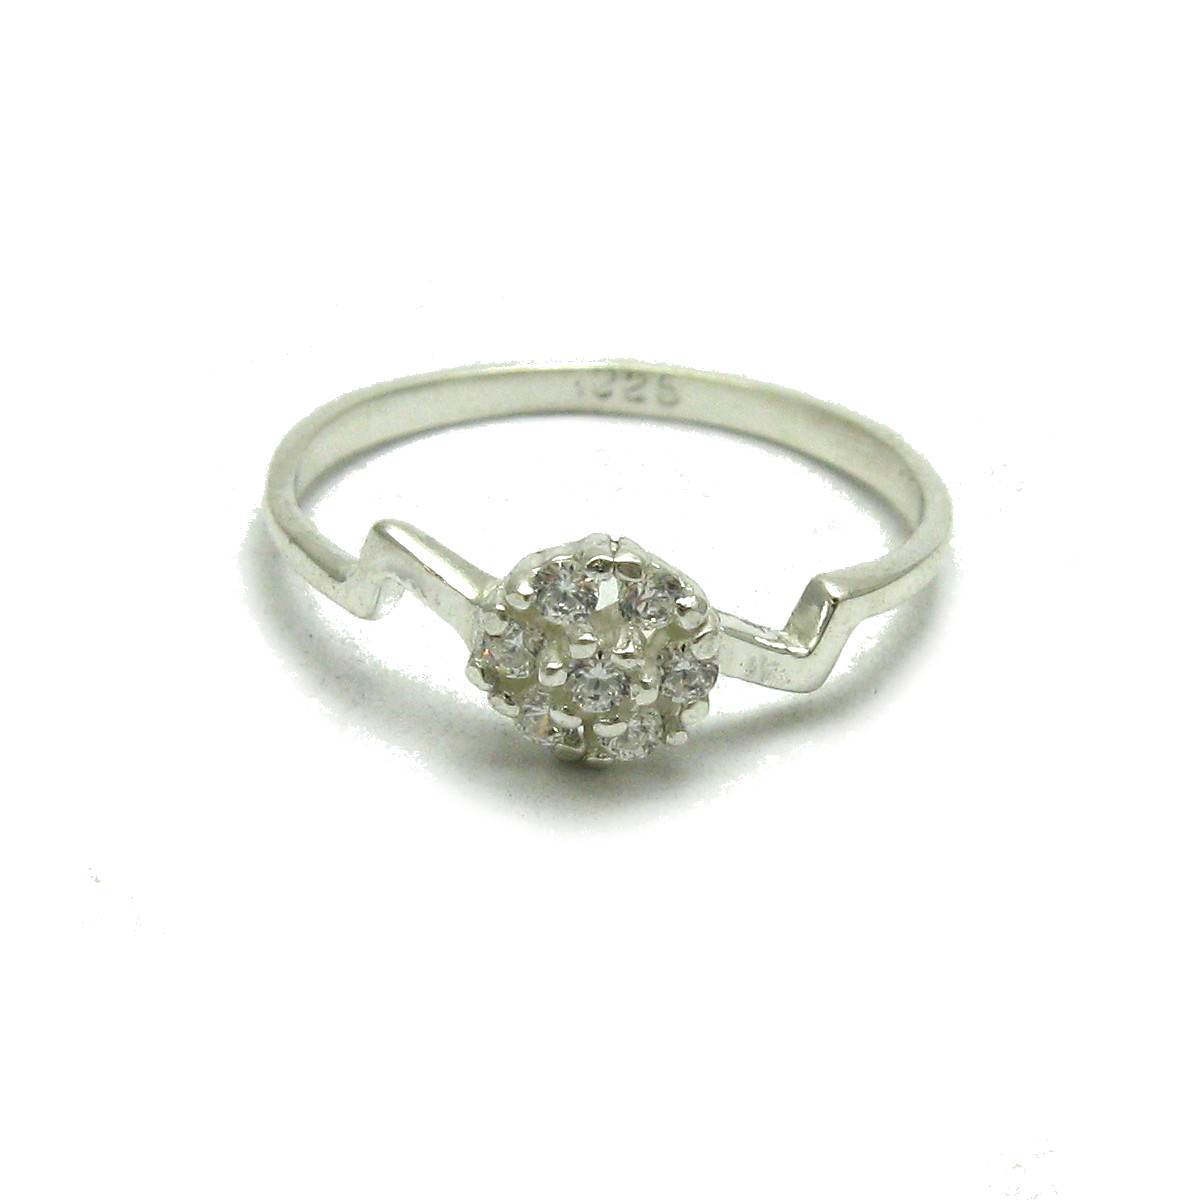 Silver ring - R001671